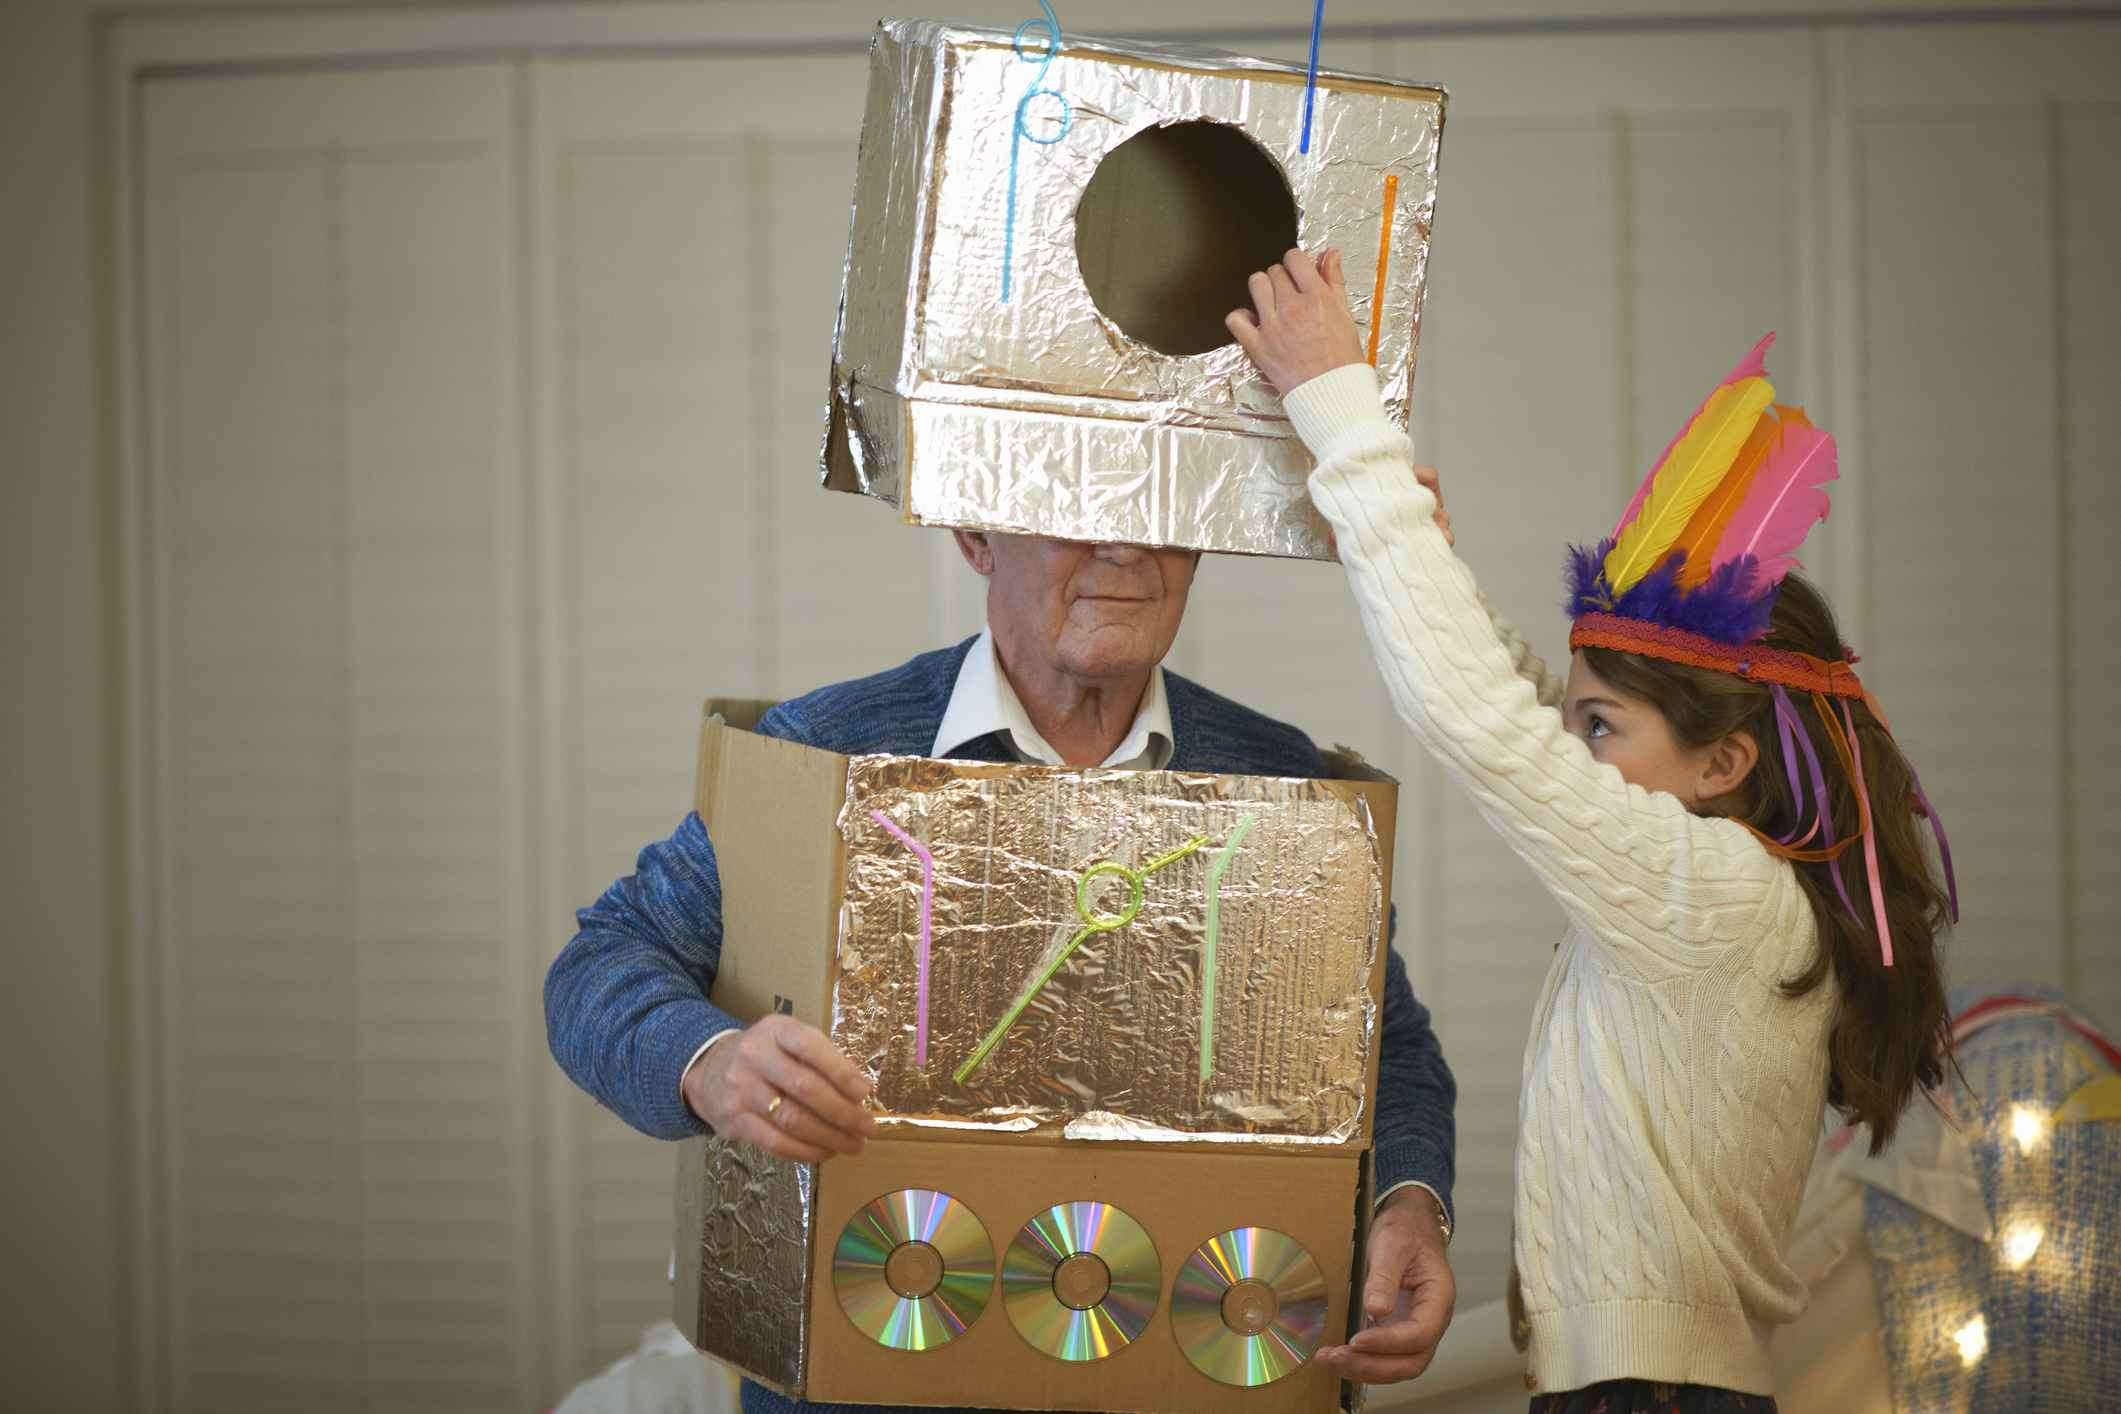 Child playing dress-up with grandparent